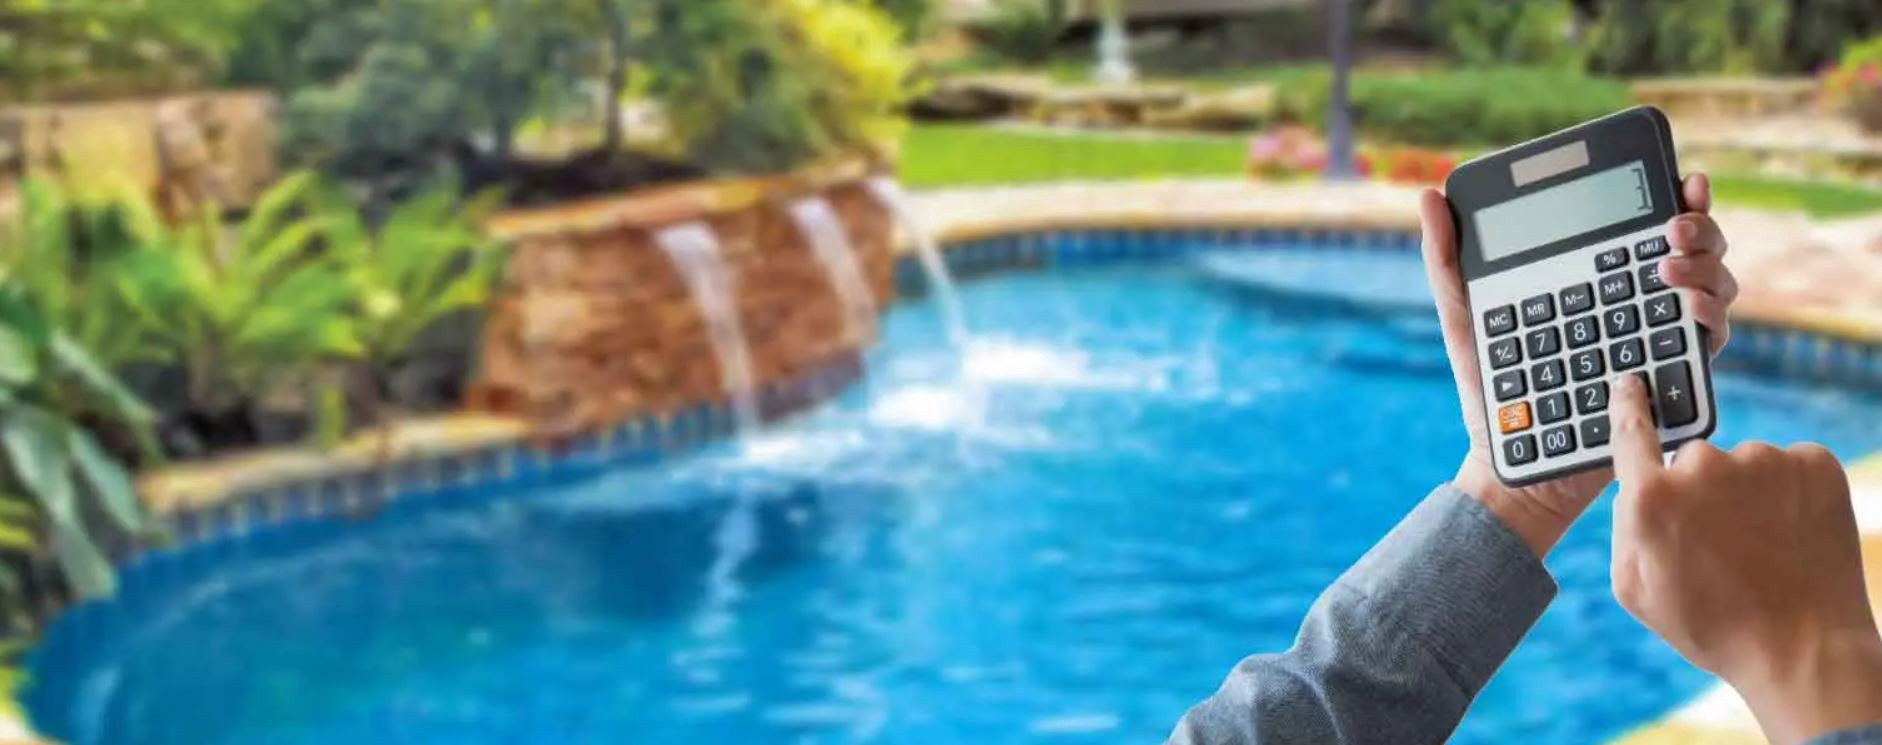 Go to PoolCost.com to find out what a pool will cost.